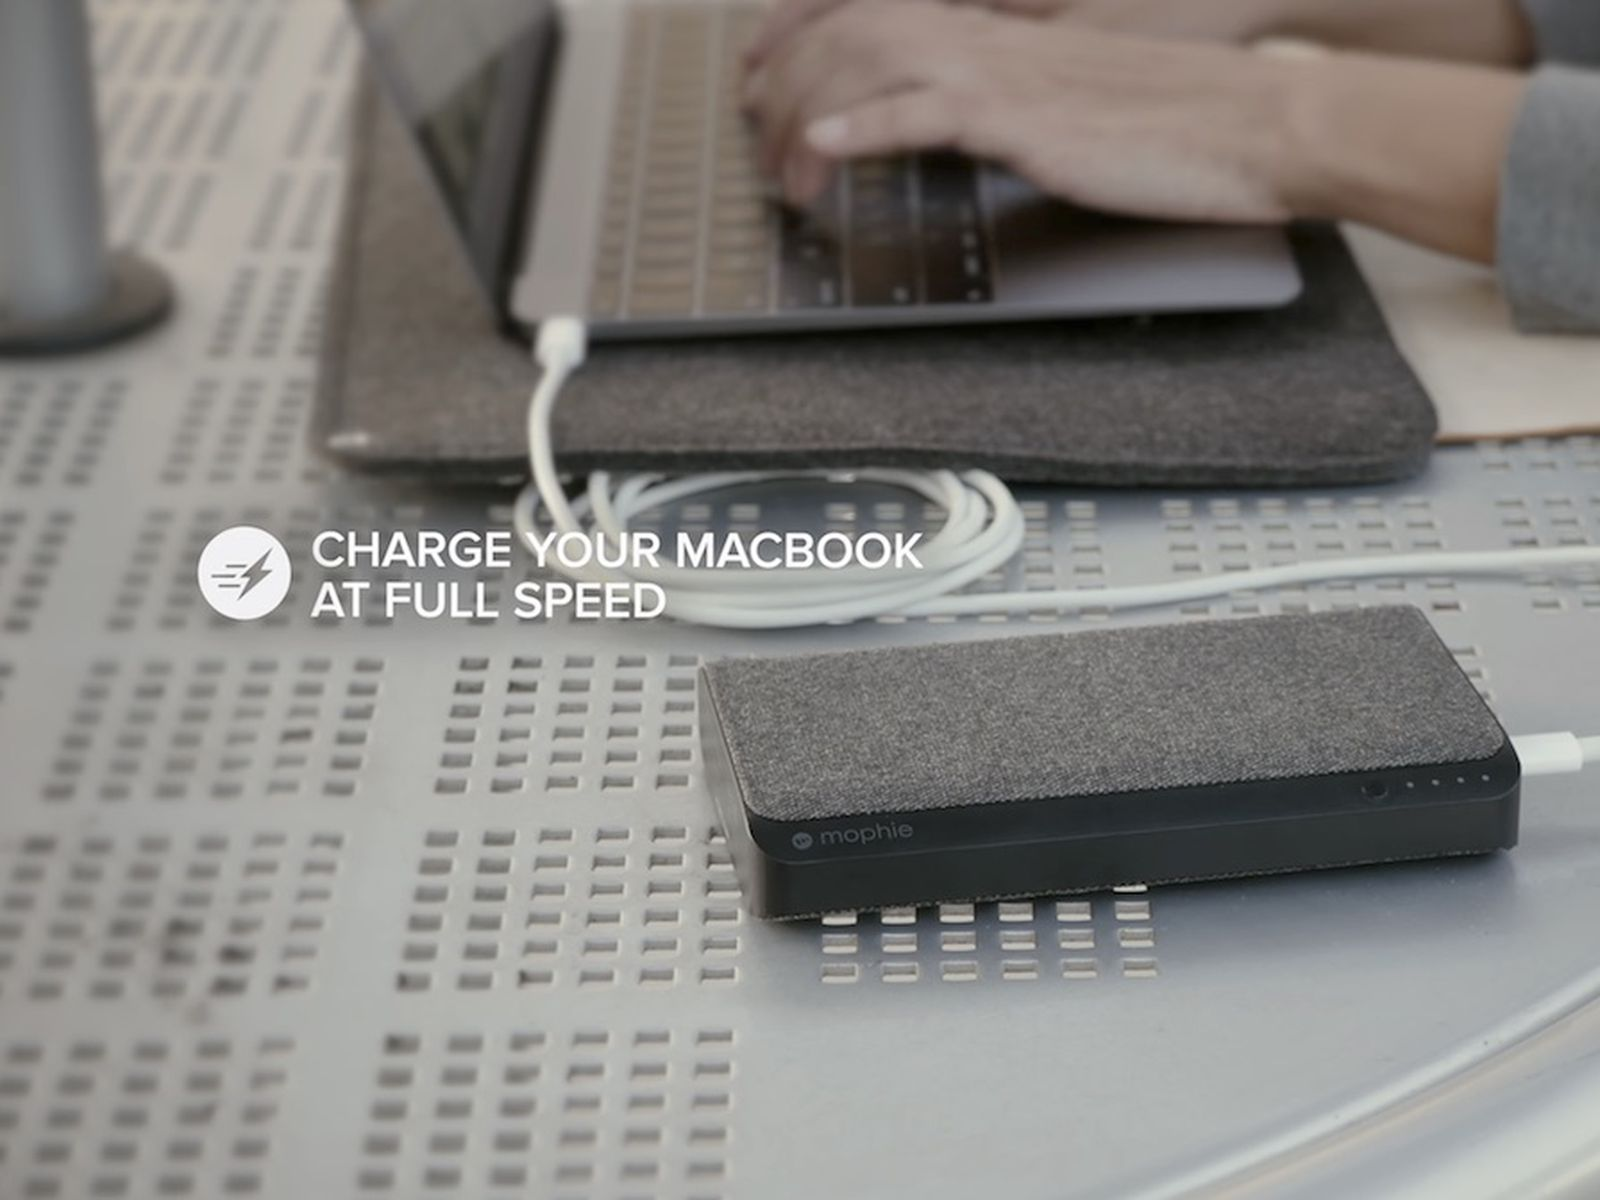 Mophie Launches 150 Powerstation Usb C Xxl Aimed At New Macbooks Macrumors 377,388 likes · 182 talking about this. powerstation usb c xxl aimed